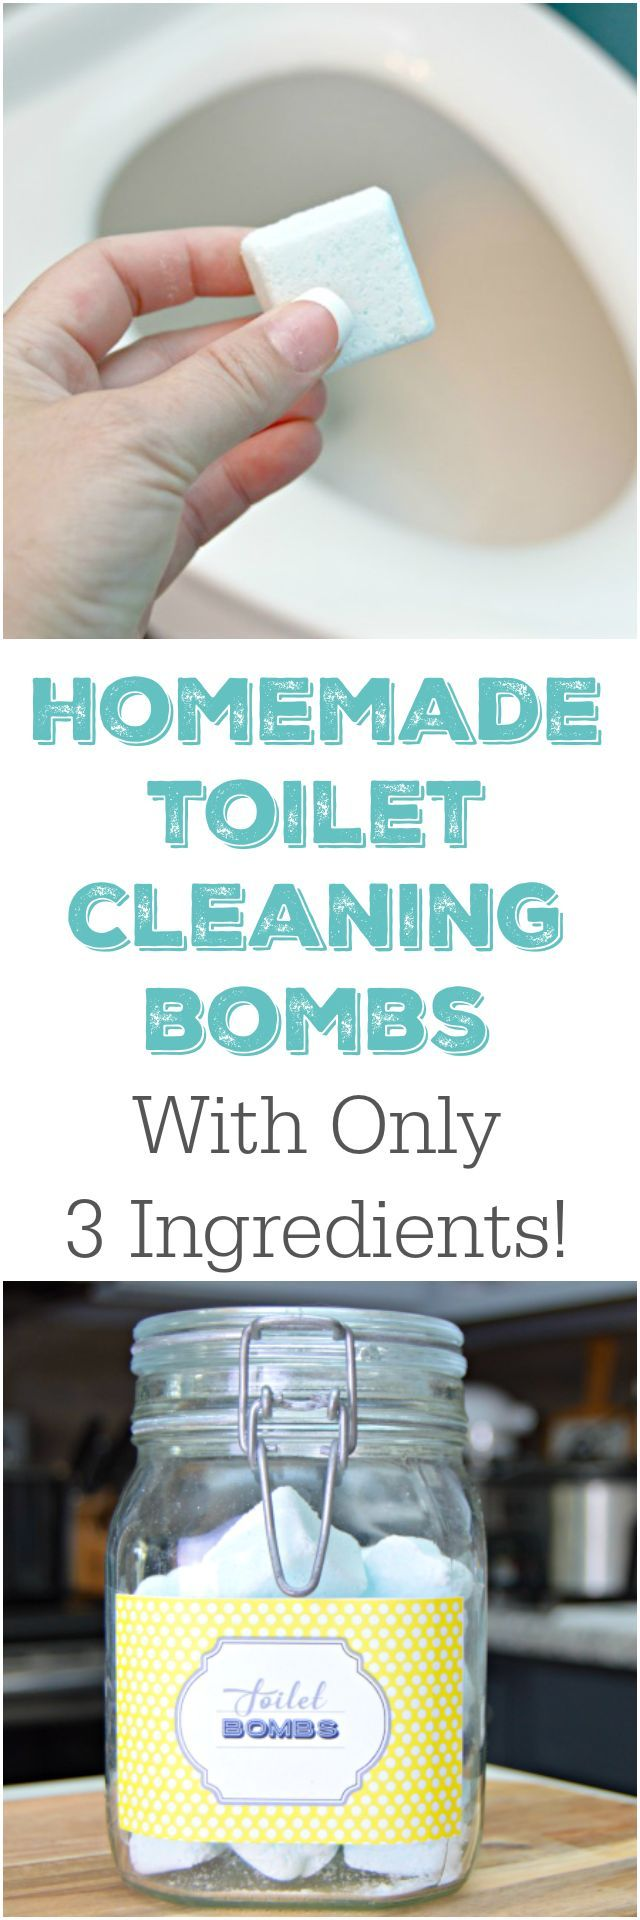 25 best ideas about citric acid on pinterest shower bombs diy products and diy bath soap - Diy toilet cleaning bombs ...